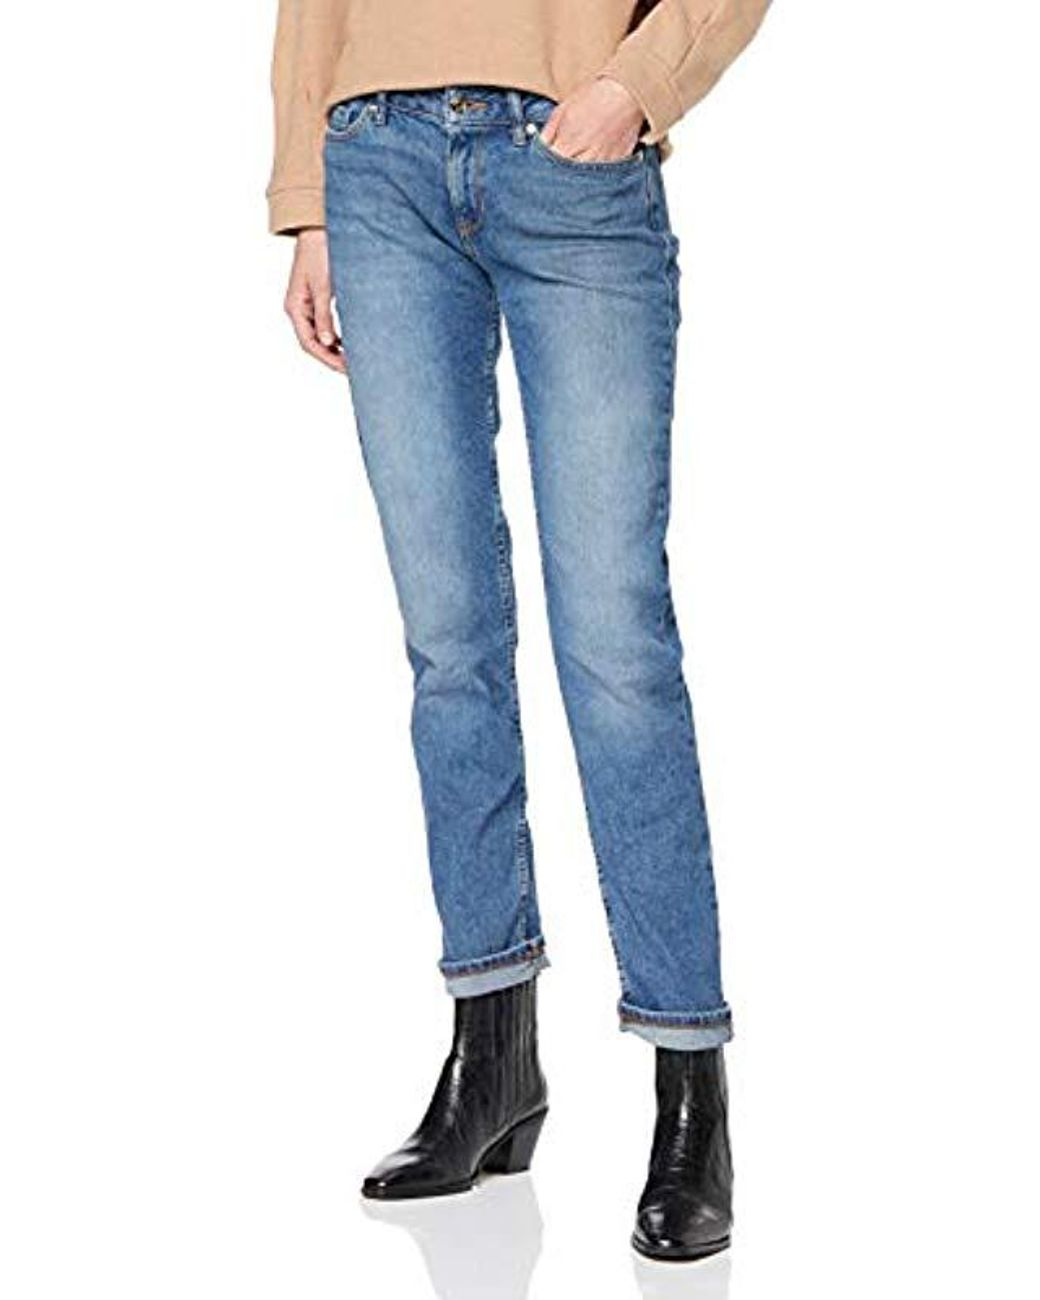 524a1c5d Long-Touch to Zoom. Long-Touch to Zoom. 1; 2; 3; 4; 5. Tommy Hilfiger - Blue  Rome Straight Rw Shane Jeans ...